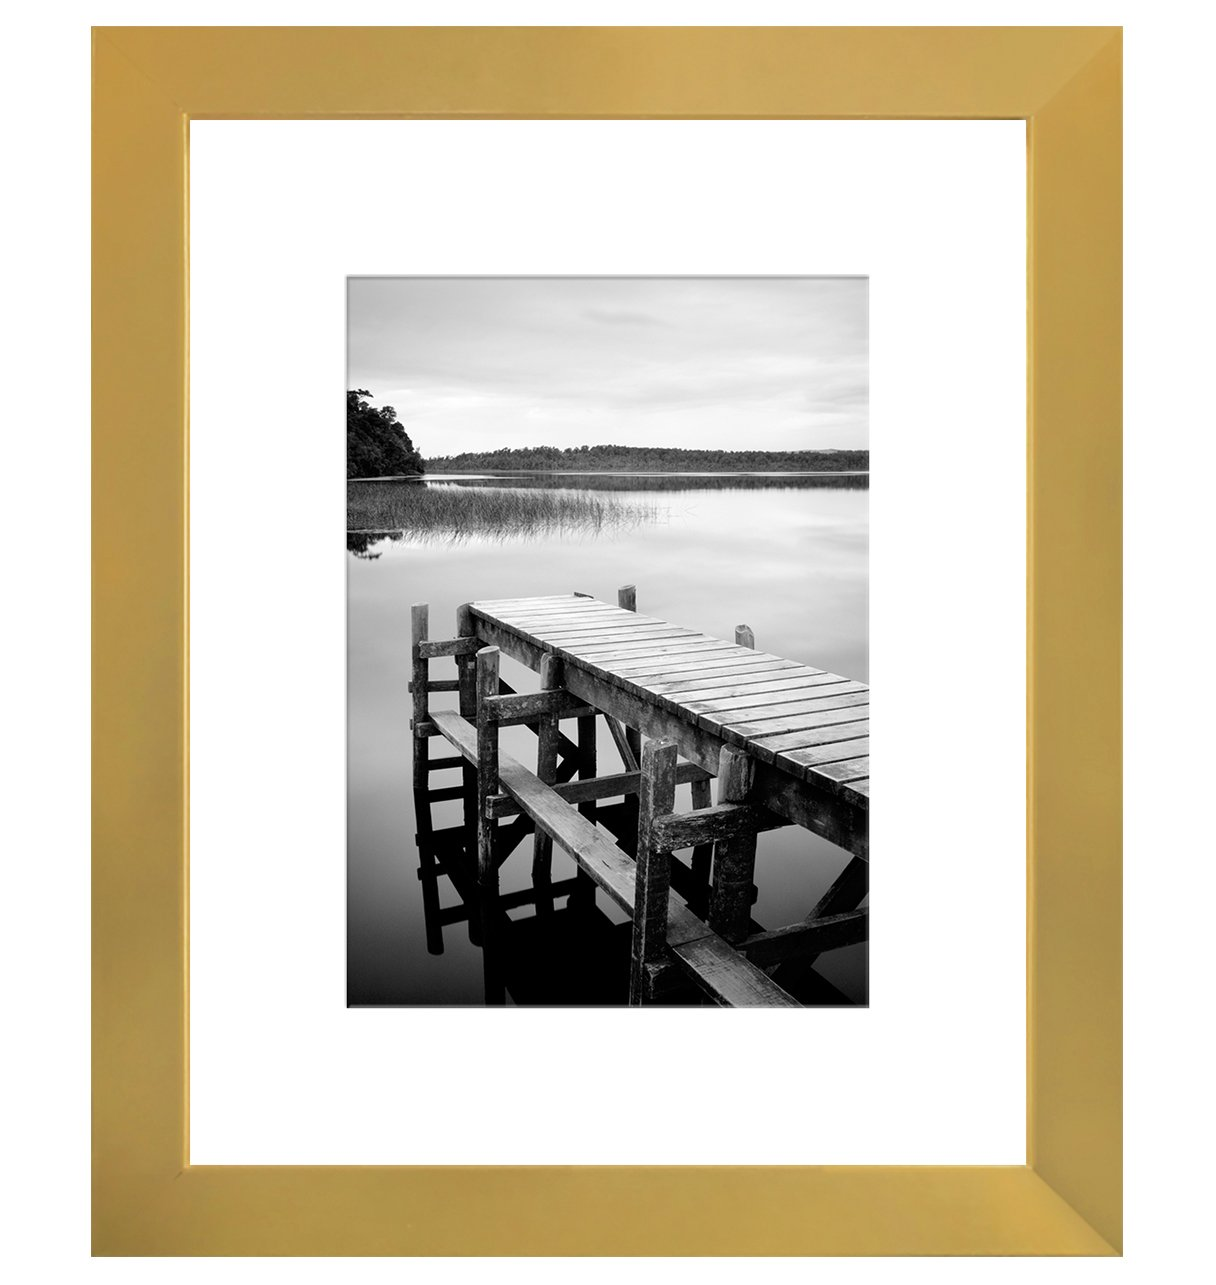 Americanflat 8x10 Gold Picture Frame - Display Pictures 5x7 with Mat - Display Pictures 8x10 Without Mat - Wall Mounting Material Included - Easel Back Included by Americanflat